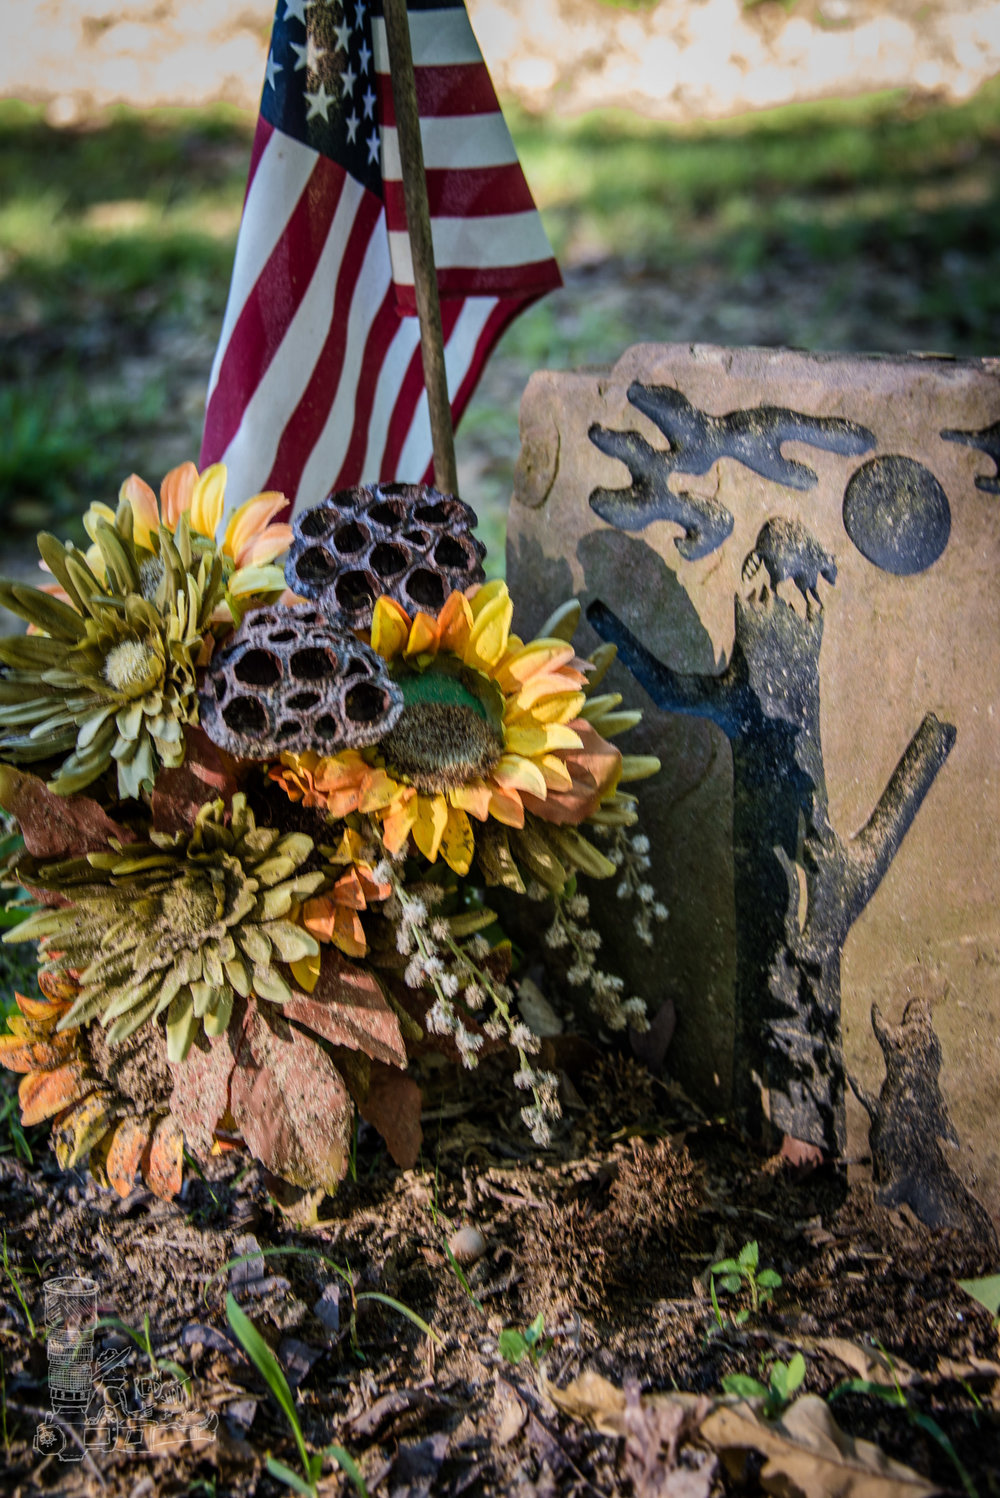 Coon Dog Cemetery 2